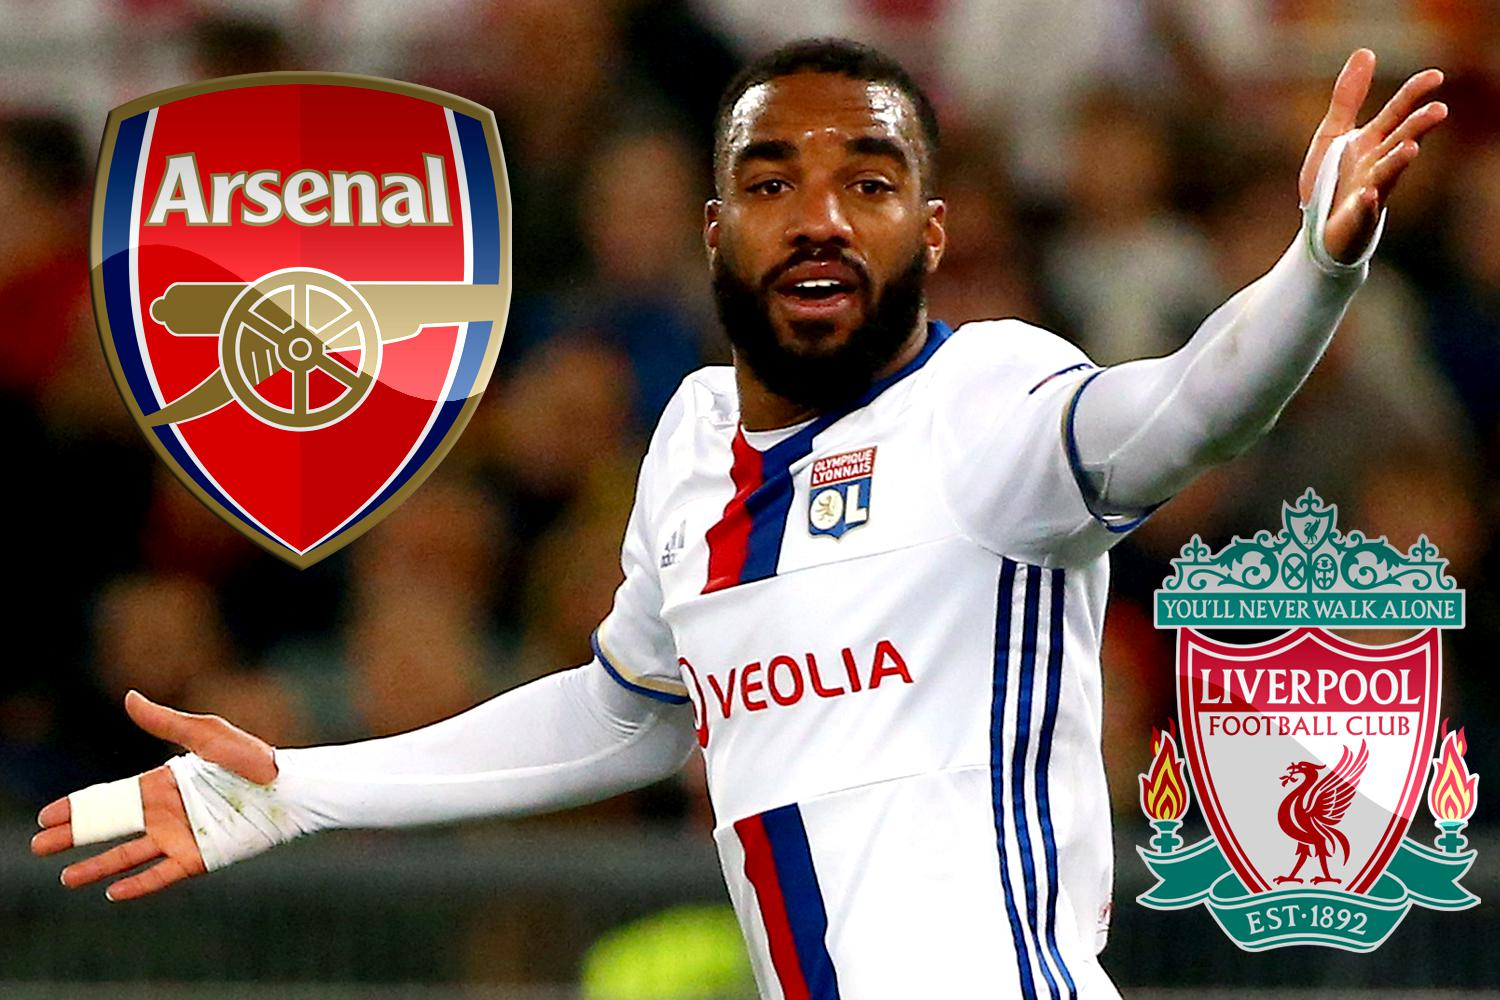 Alexandre Lacazette Arsenal and Liverpool transfer tar could